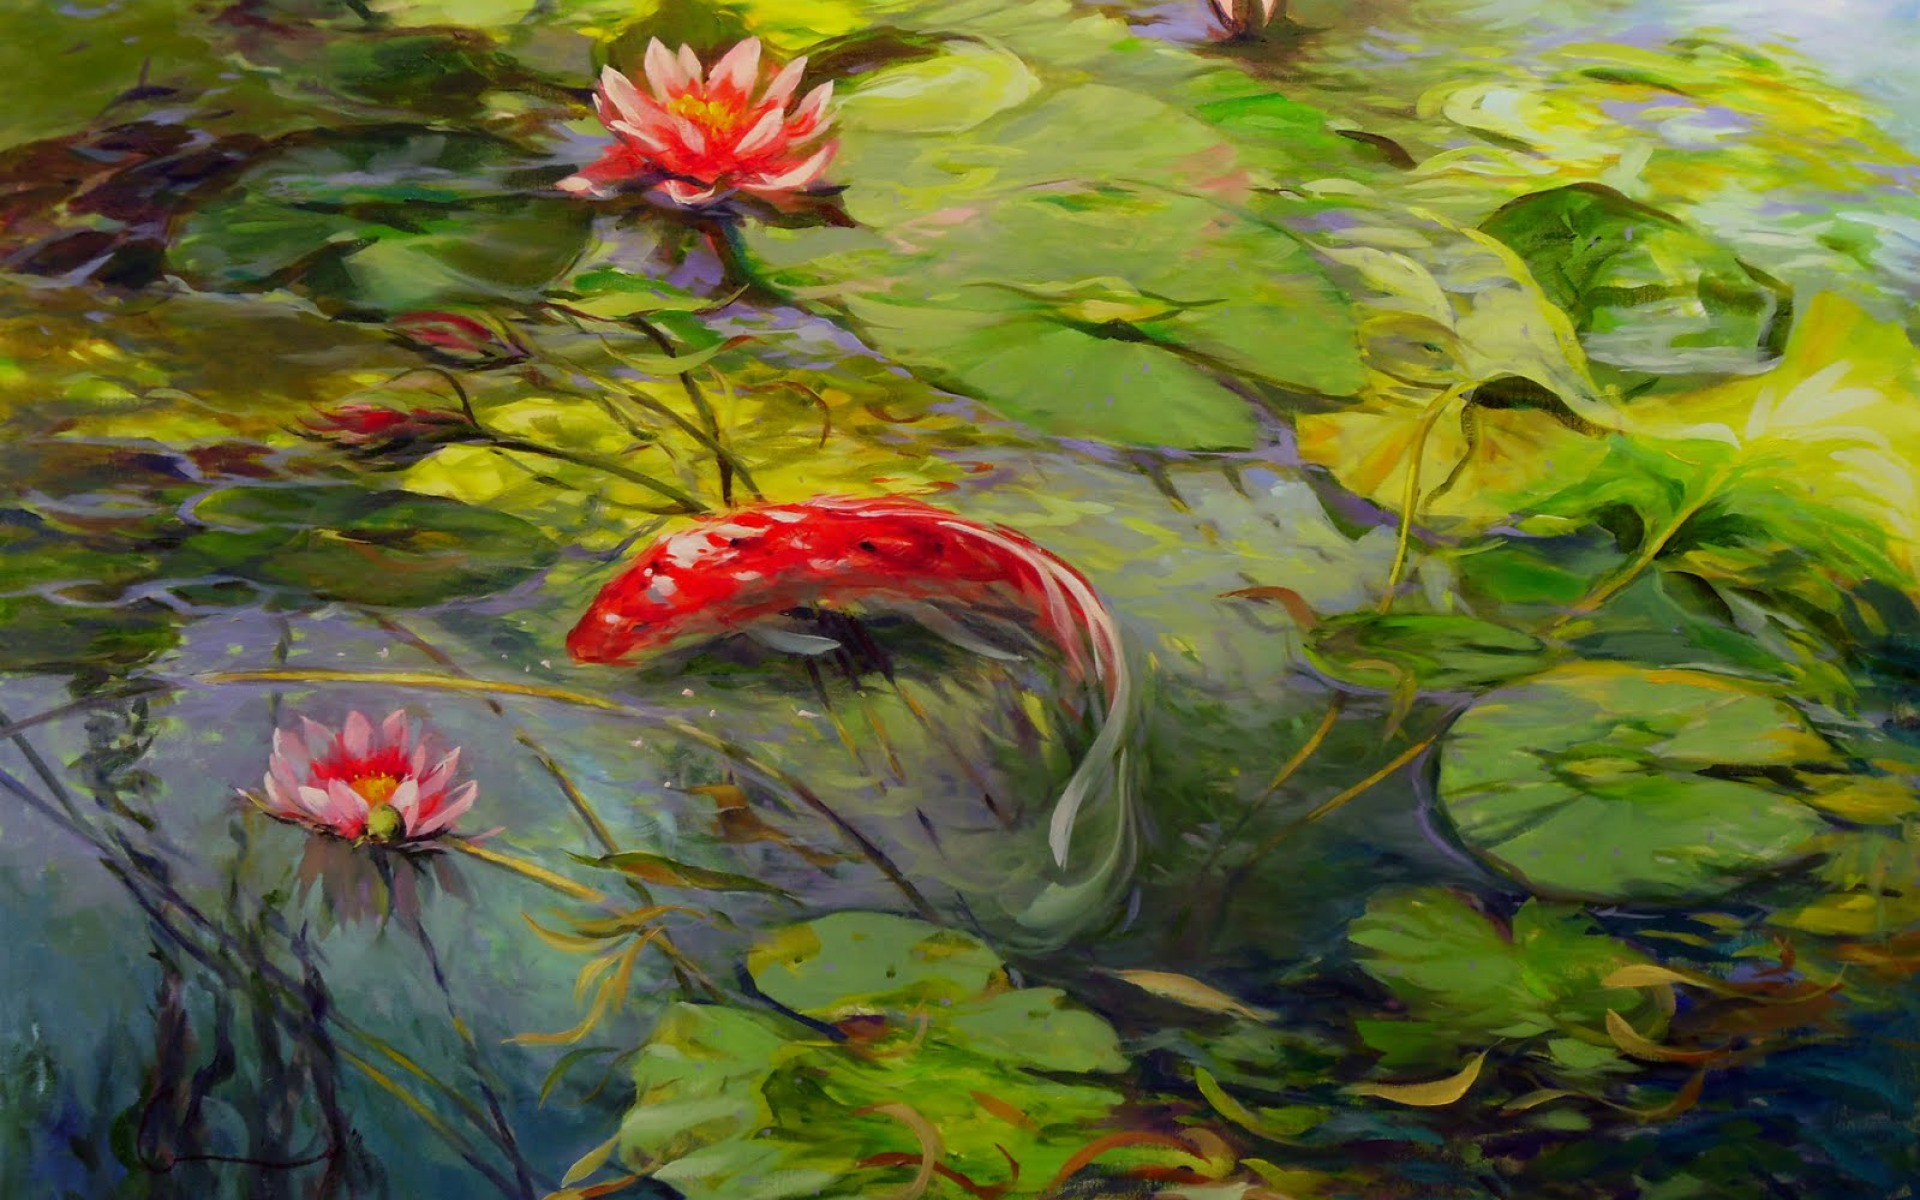 Lovely Koi Lily Pond wallpapers | Lovely Koi Lily Pond stock photos